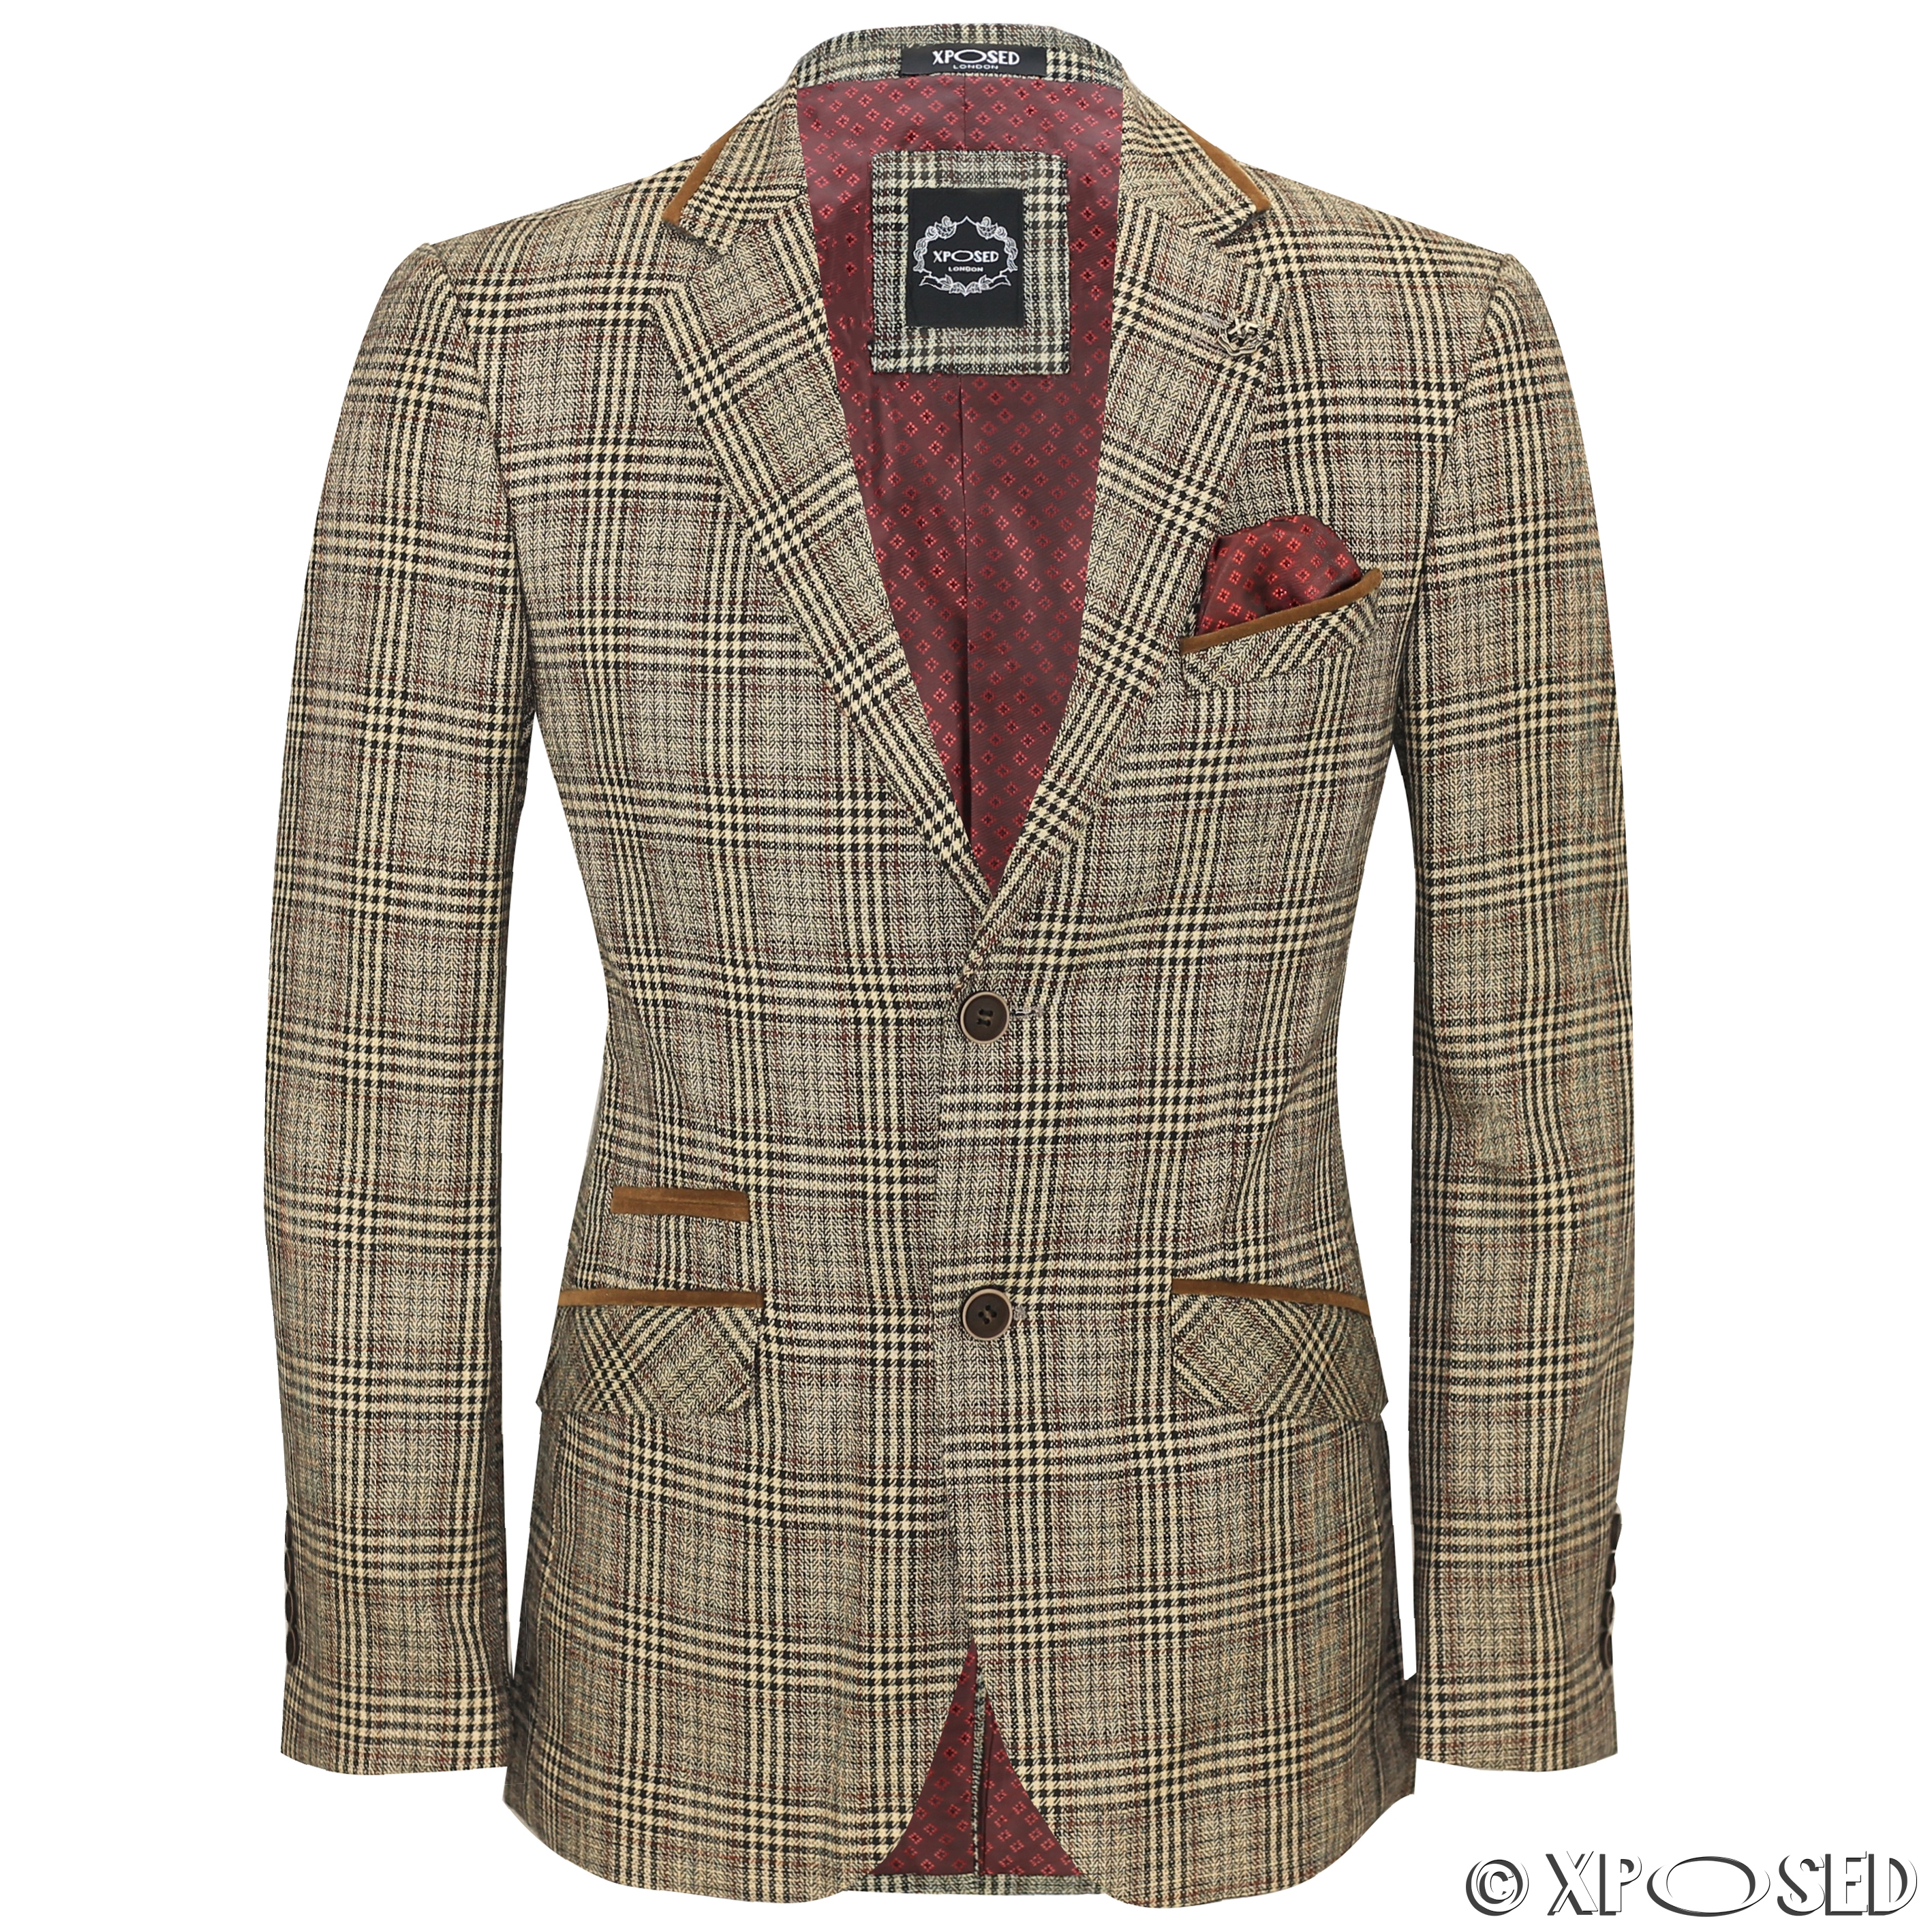 An elbow patches sport coat is a popular apparel choice with jeans at a homecoming football game or for job interviews. Shirts, sweaters and accessories that match the color of the elbow patch can accentuate it, or alternatively, elbow patches can unobtrusively blend into the look of the jacket.